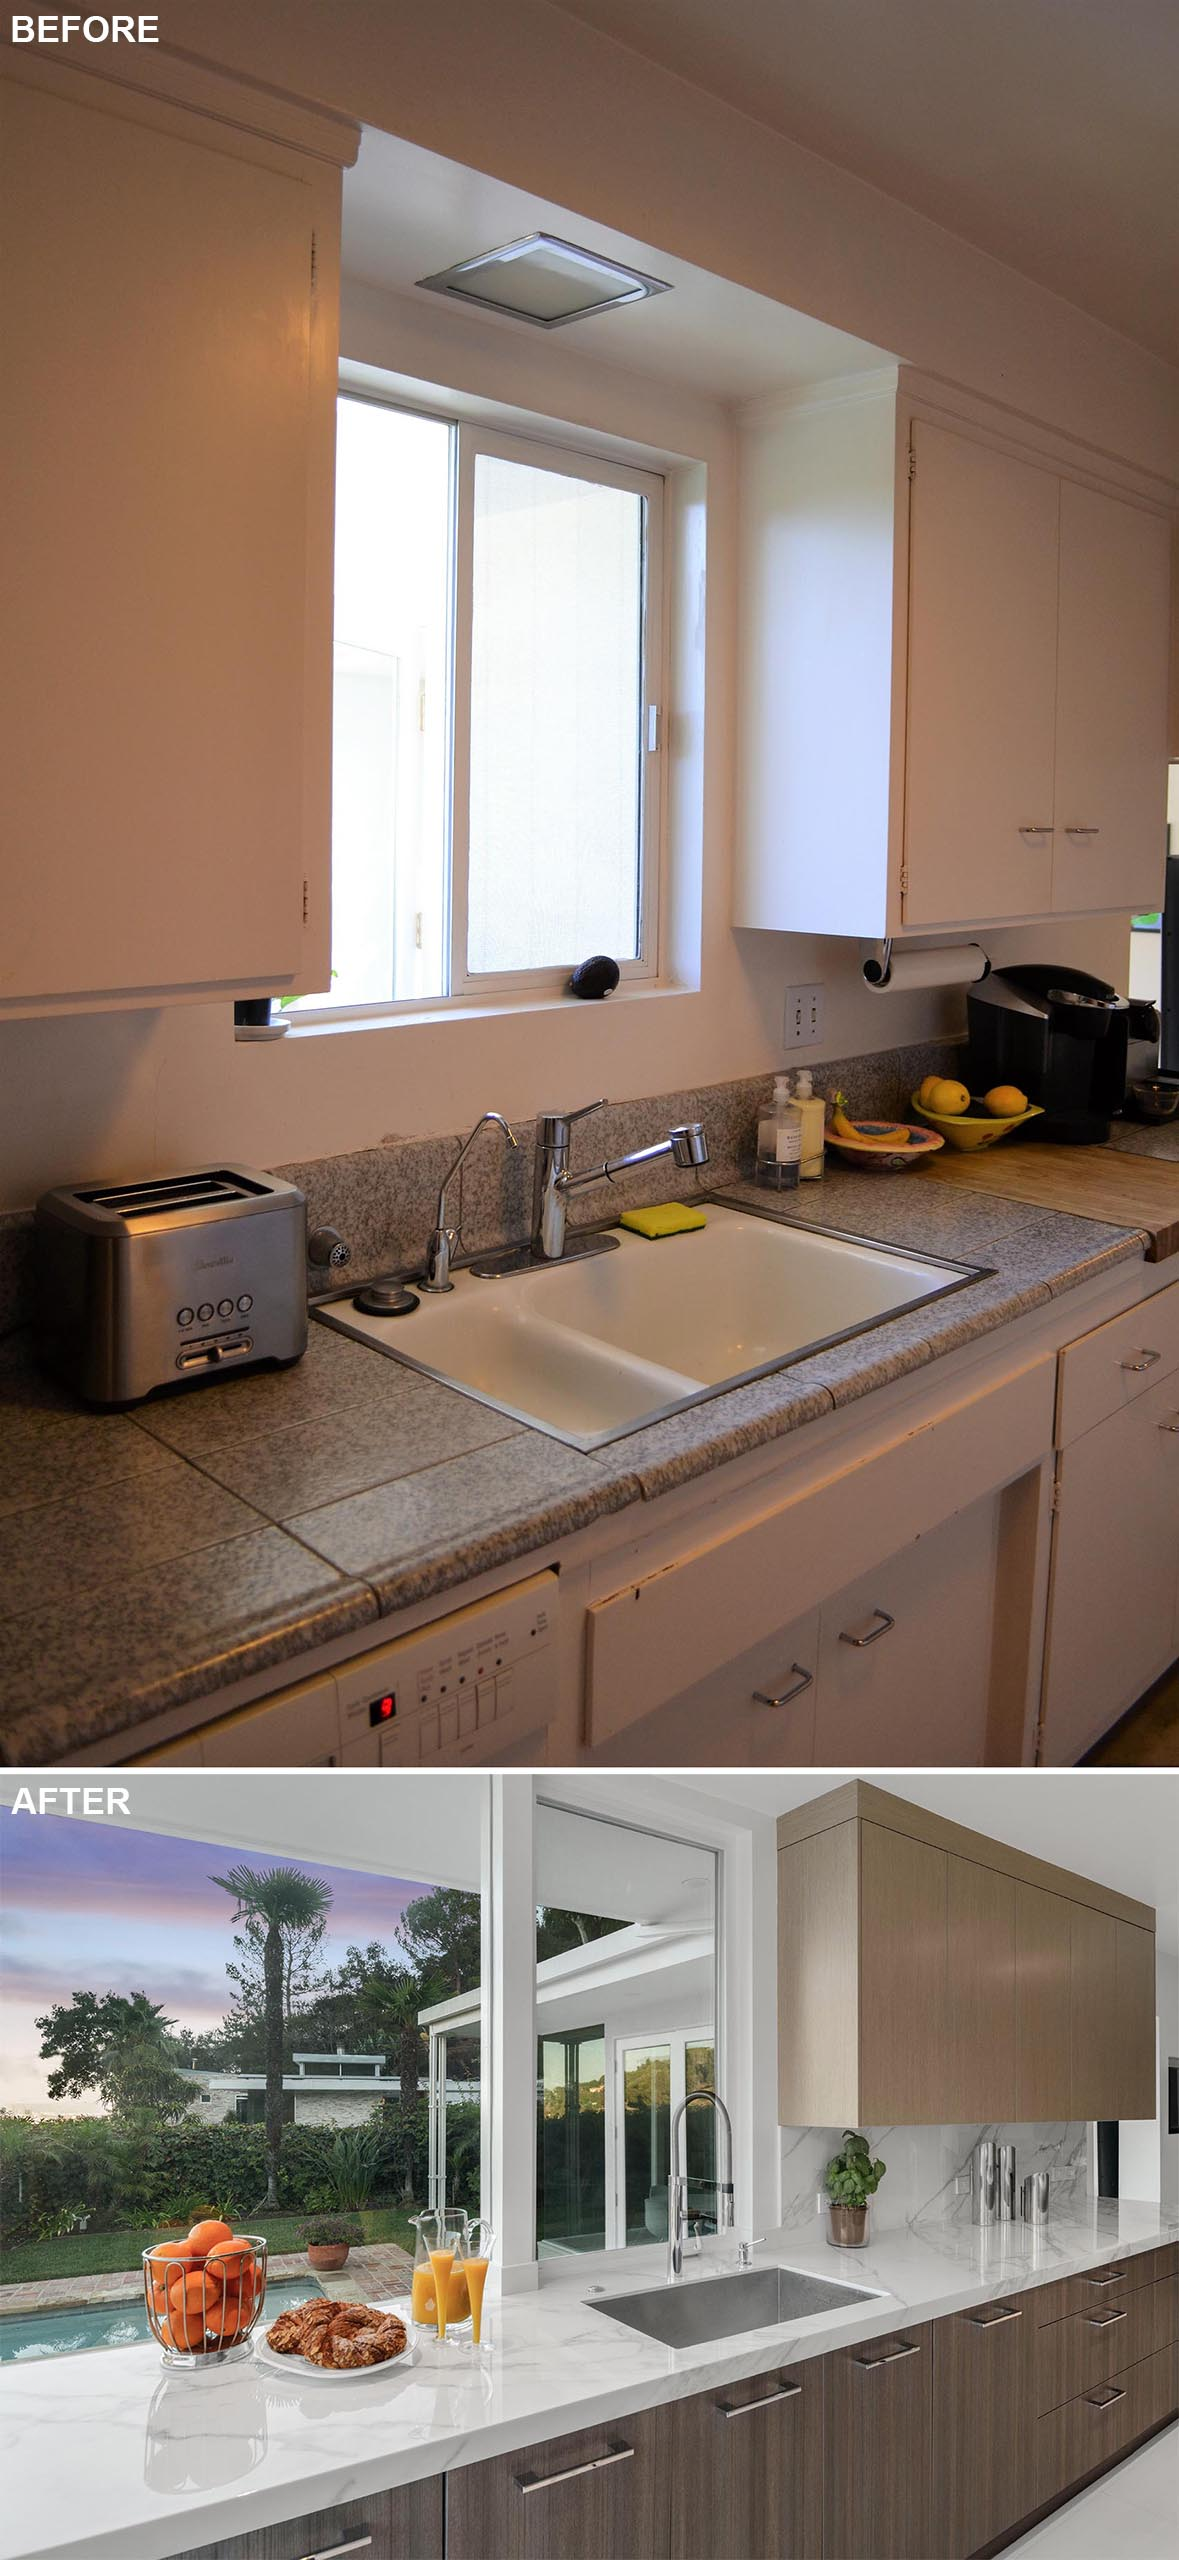 This modern kitchen remodel features custom cabinets with wood fronts, and an undermount stainless steel sink.